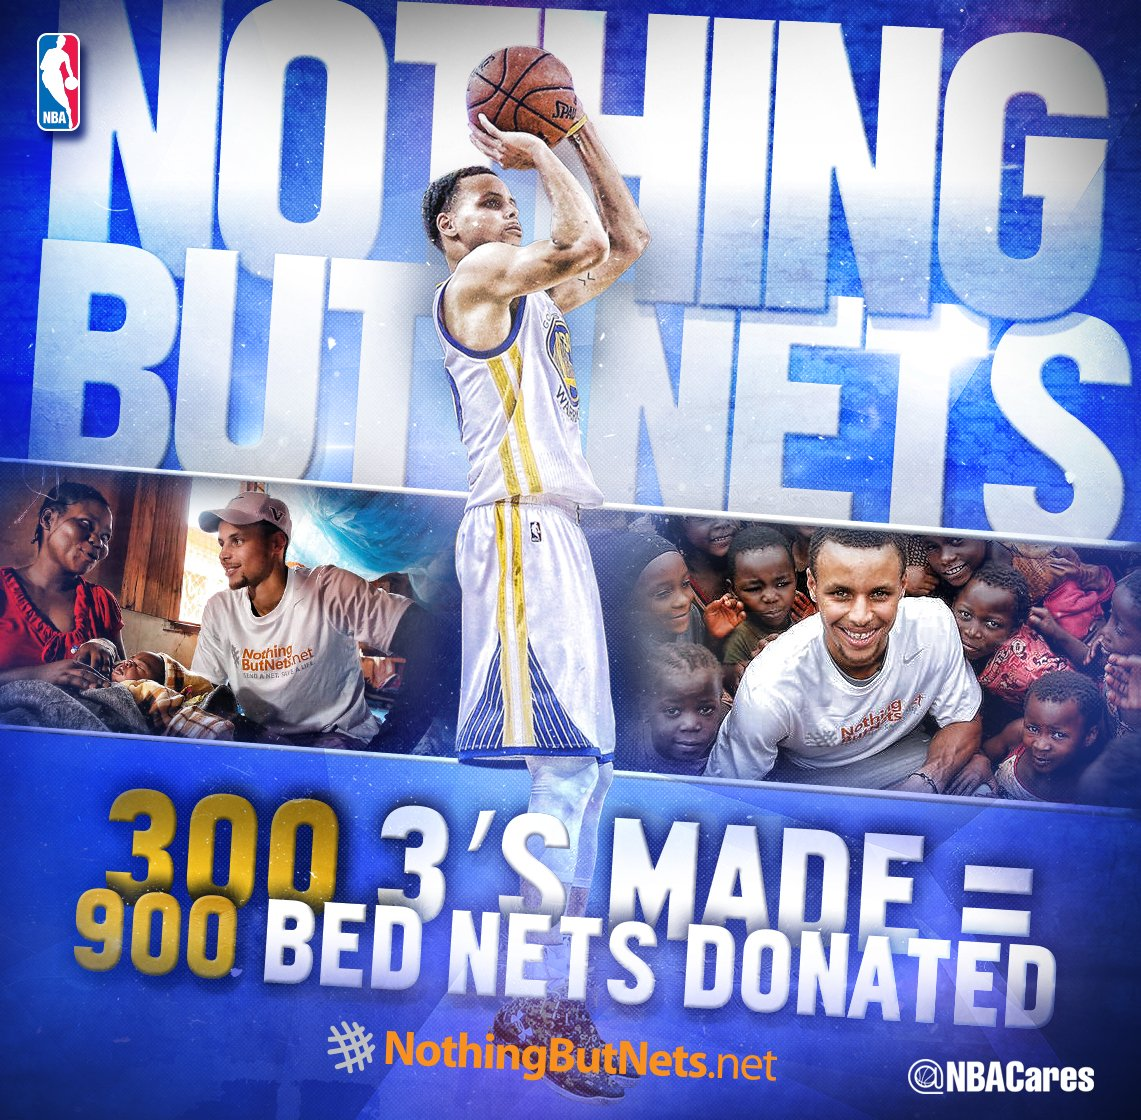 900 & counting… Every 3 @StephenCurry30 hits this season = 3 bed nets donated to @nothingbutnets! #NBACares https://t.co/xD0reZOVmI